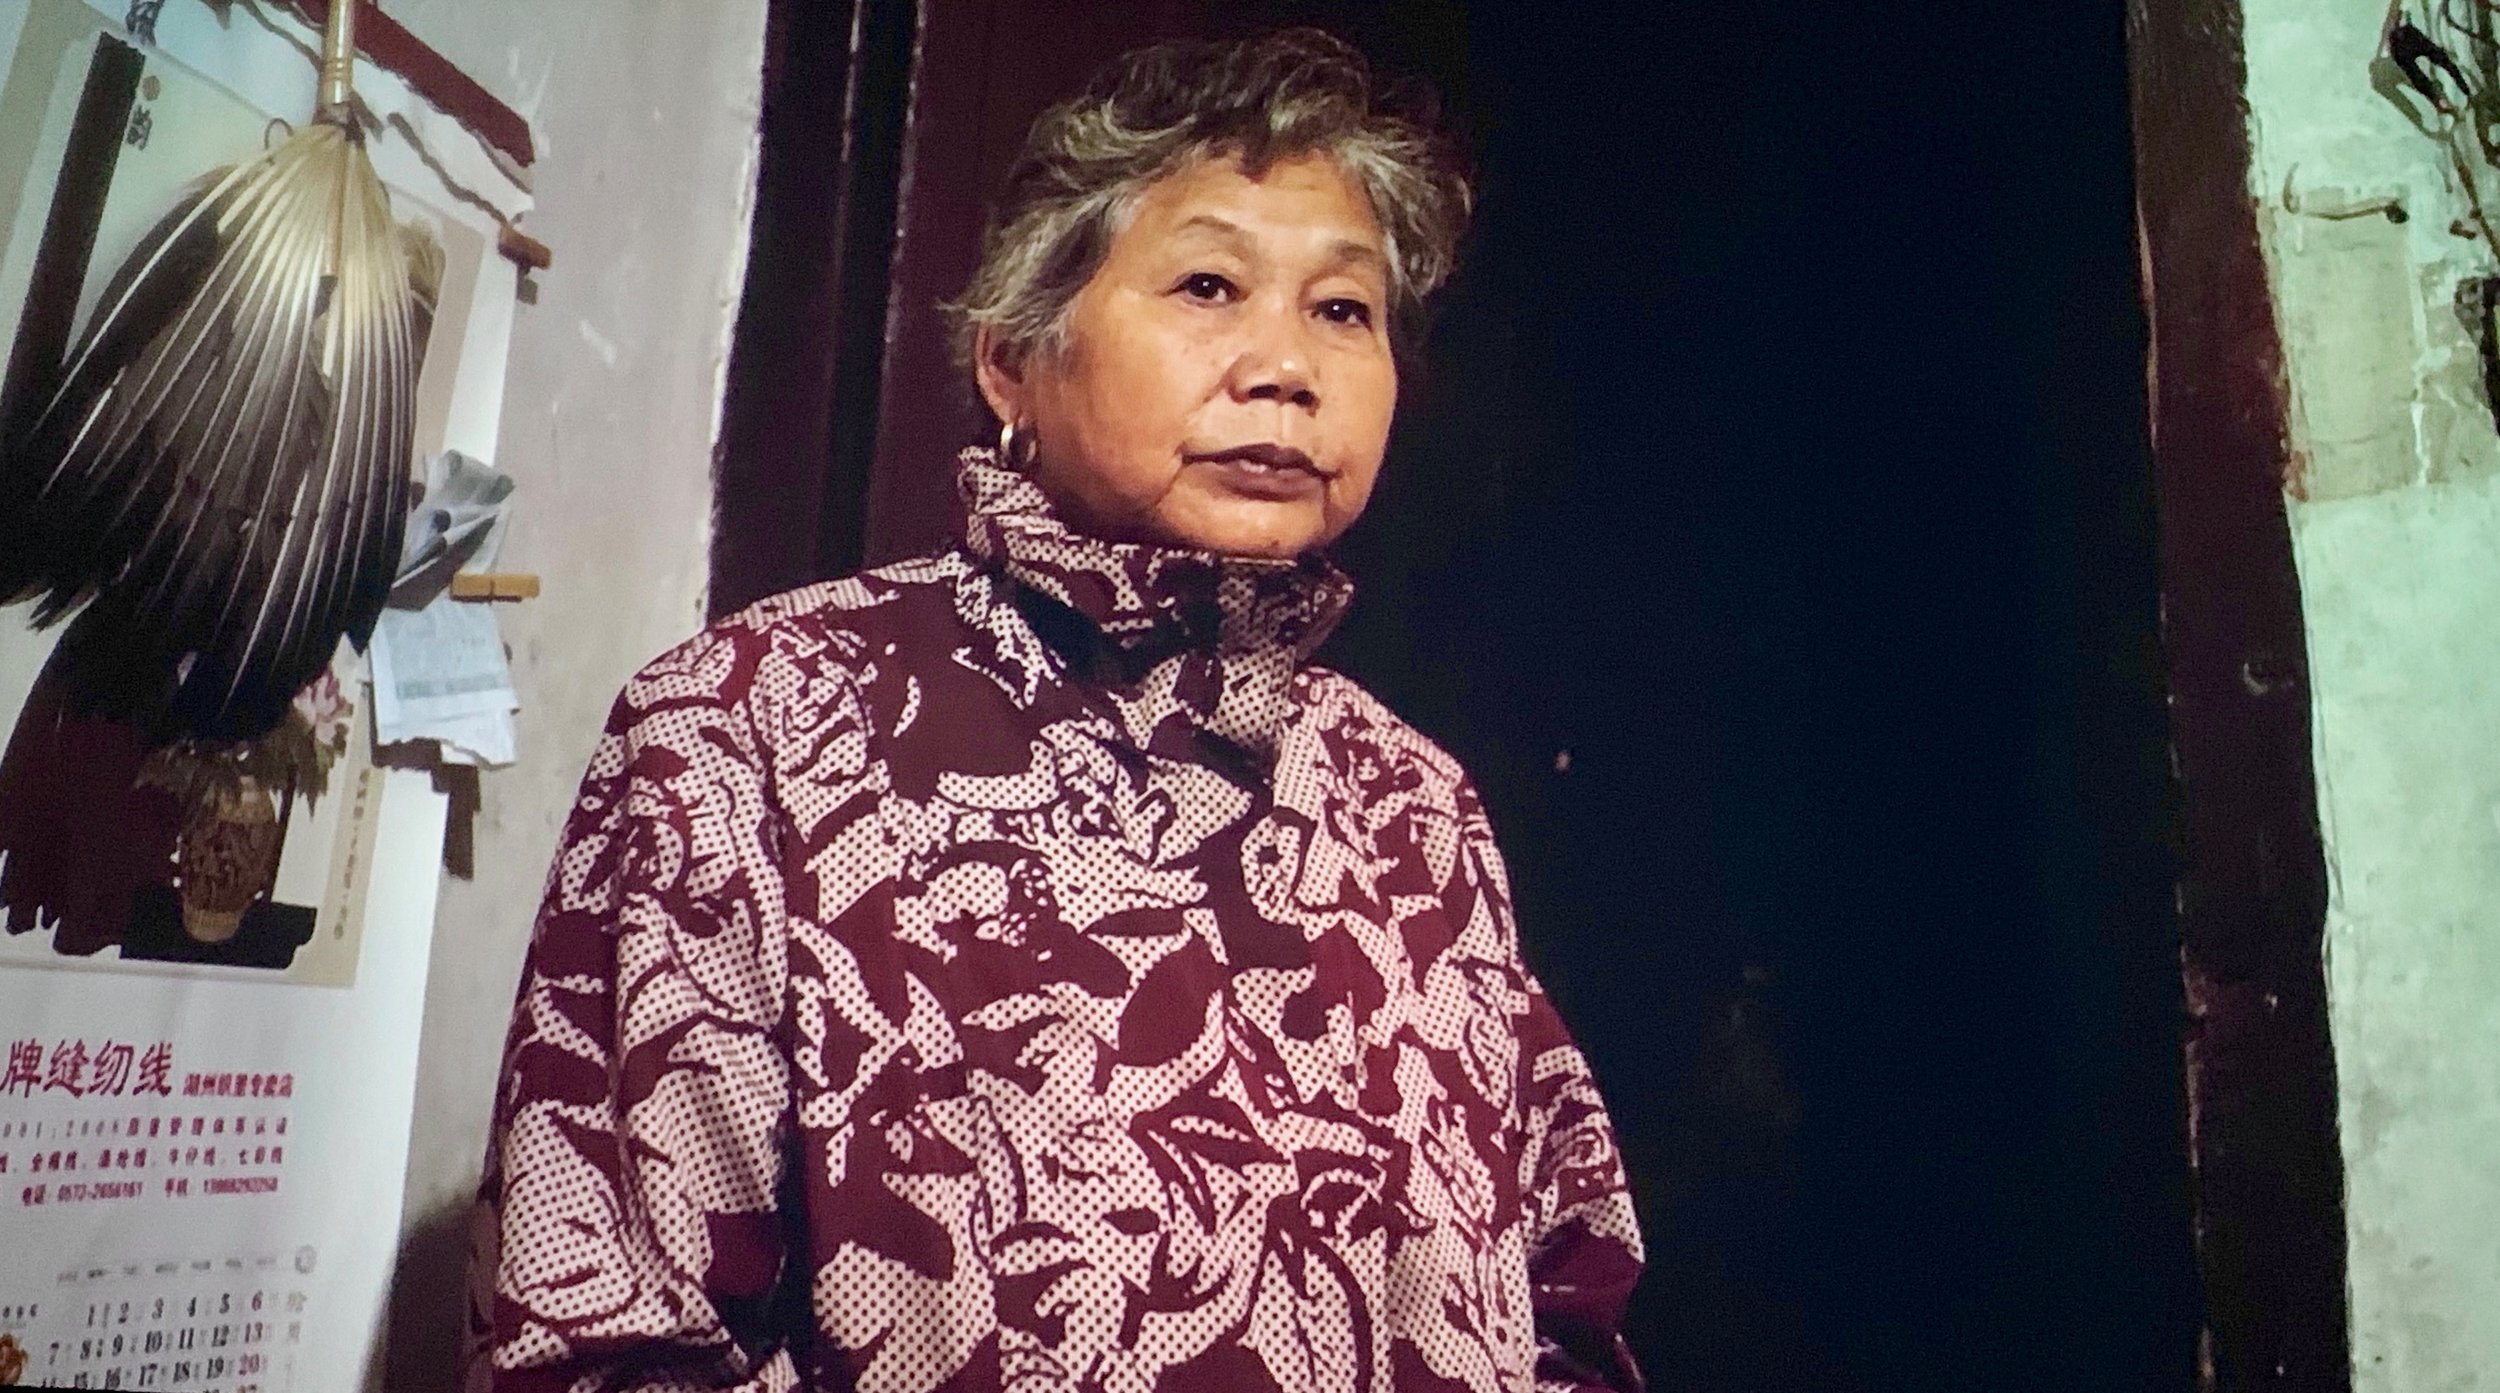 Mrs. Fang before her illness bound her to bed. Still from Wang Bing film  Fang Xiu Ying.